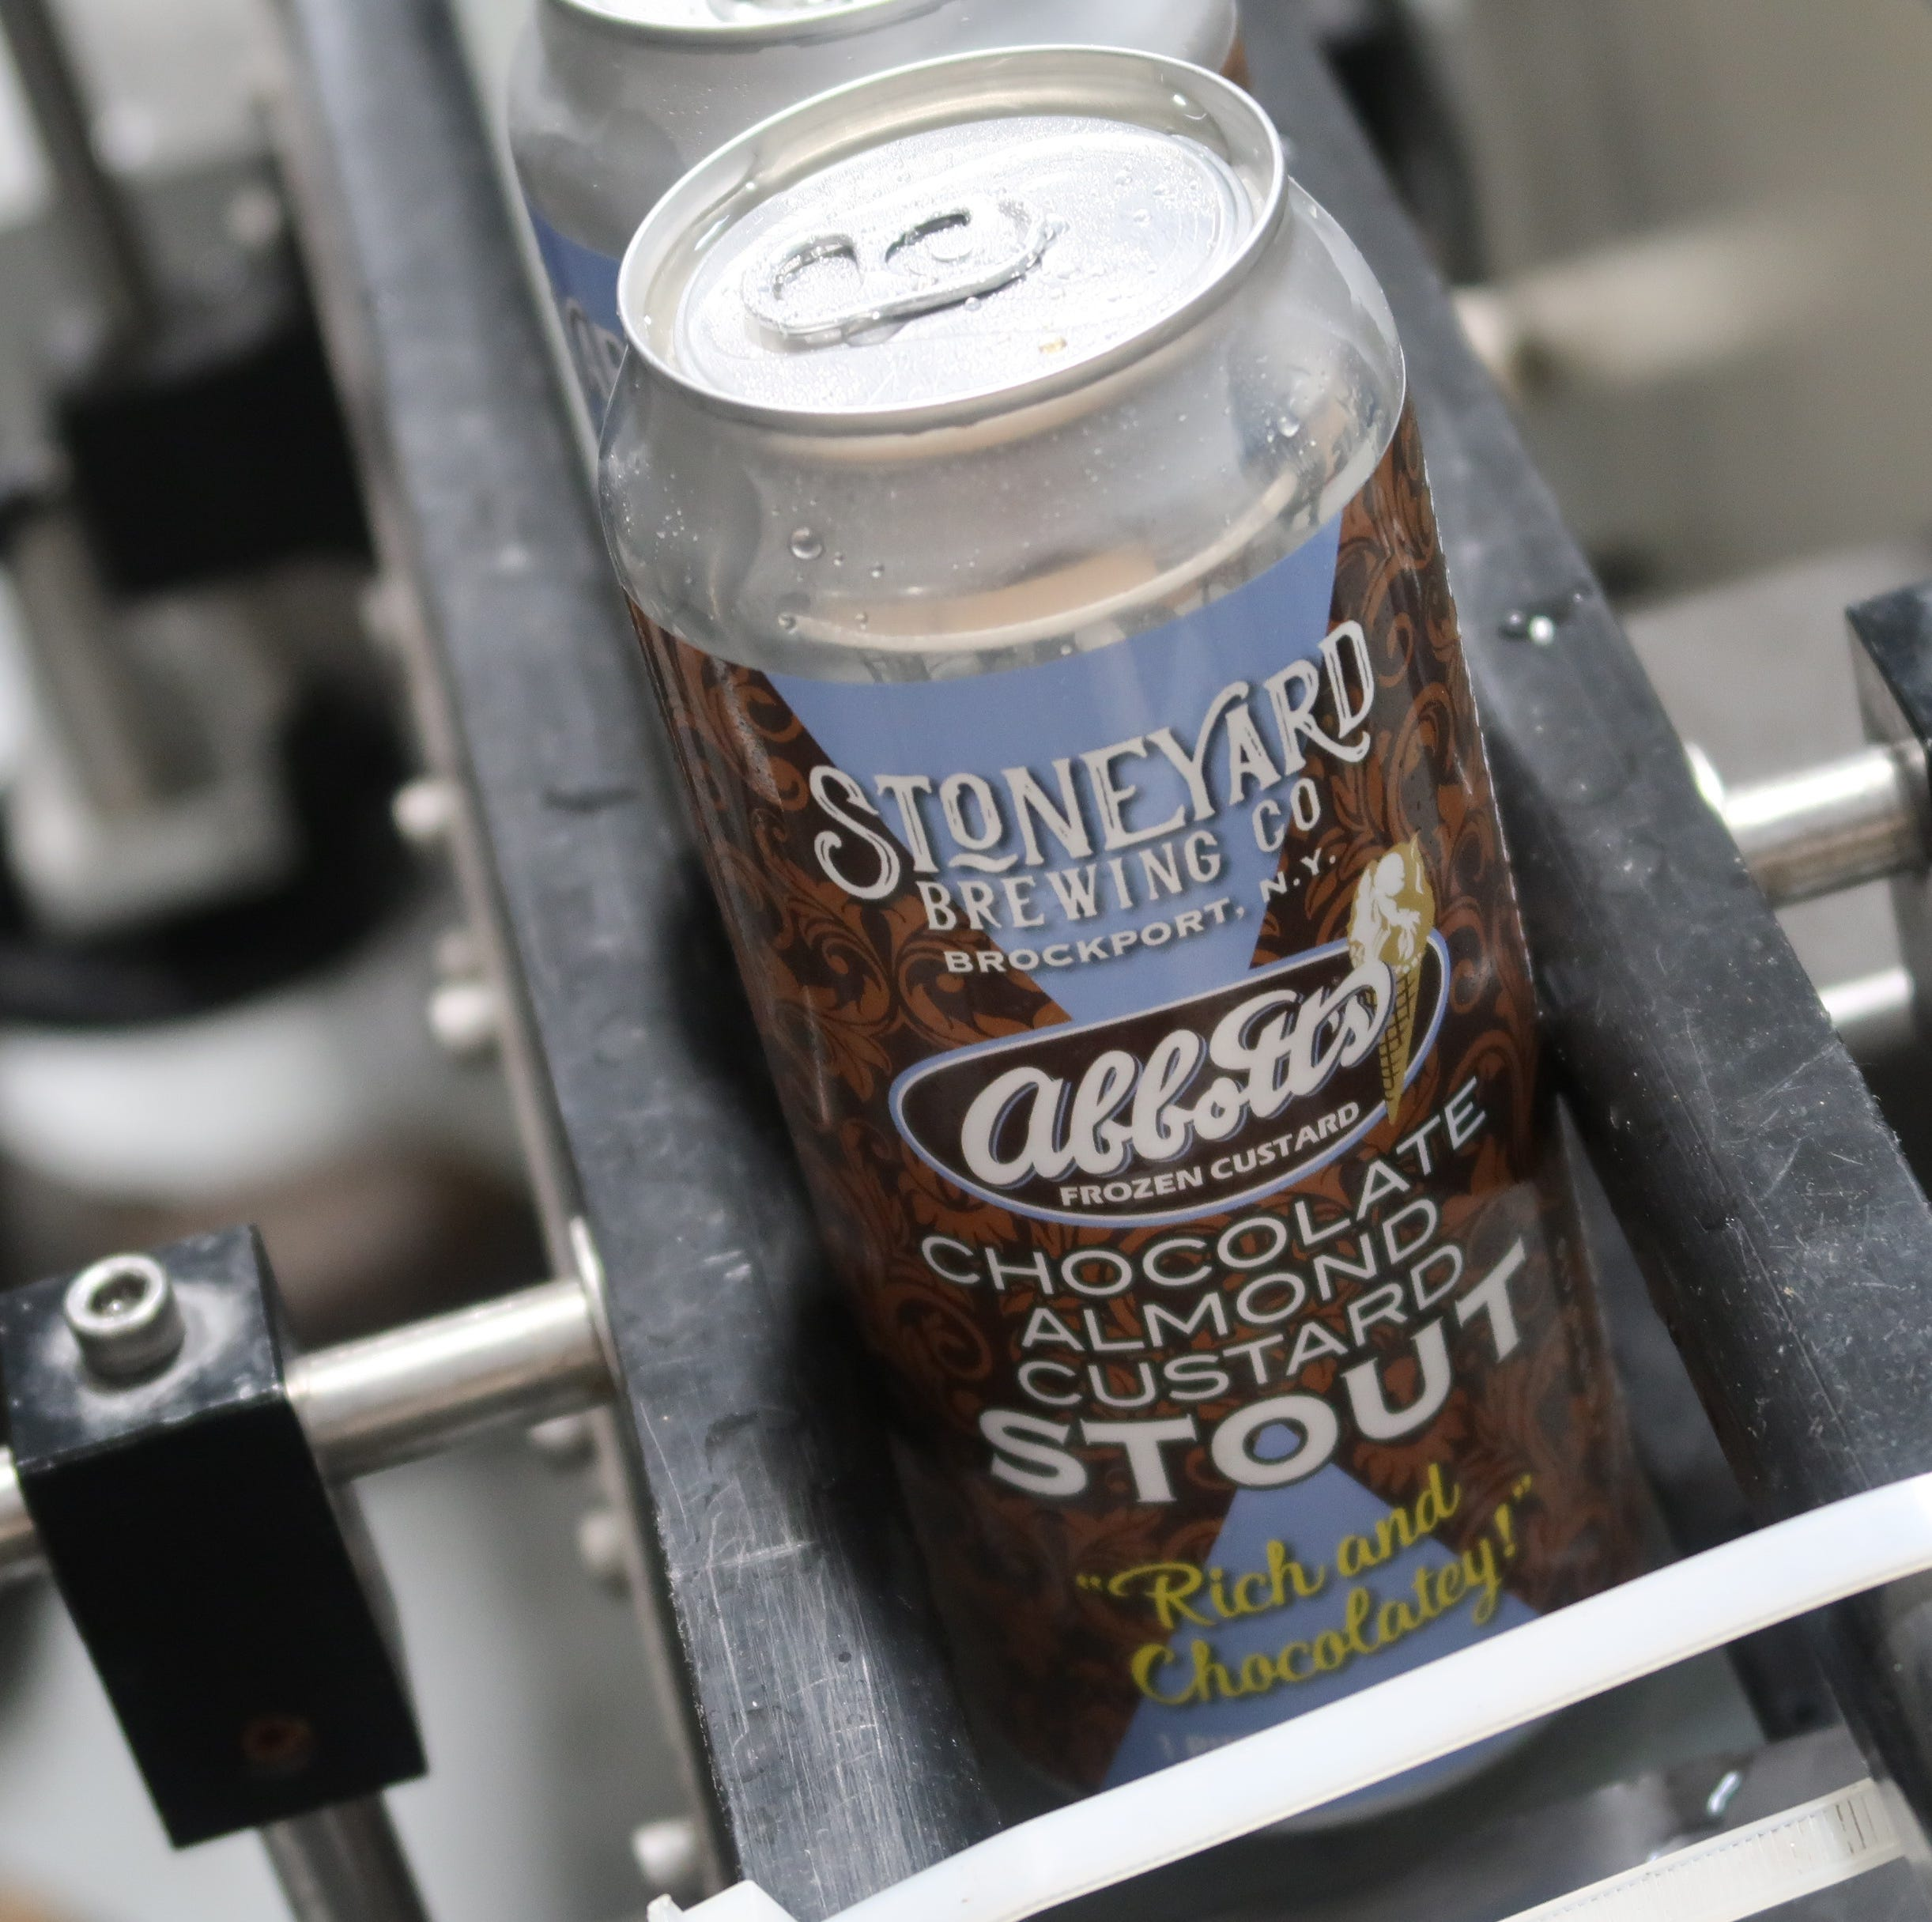 Can't lick this: Abbott's and Stoneyard Brewing combine for Chocolate Almond Custard Stout